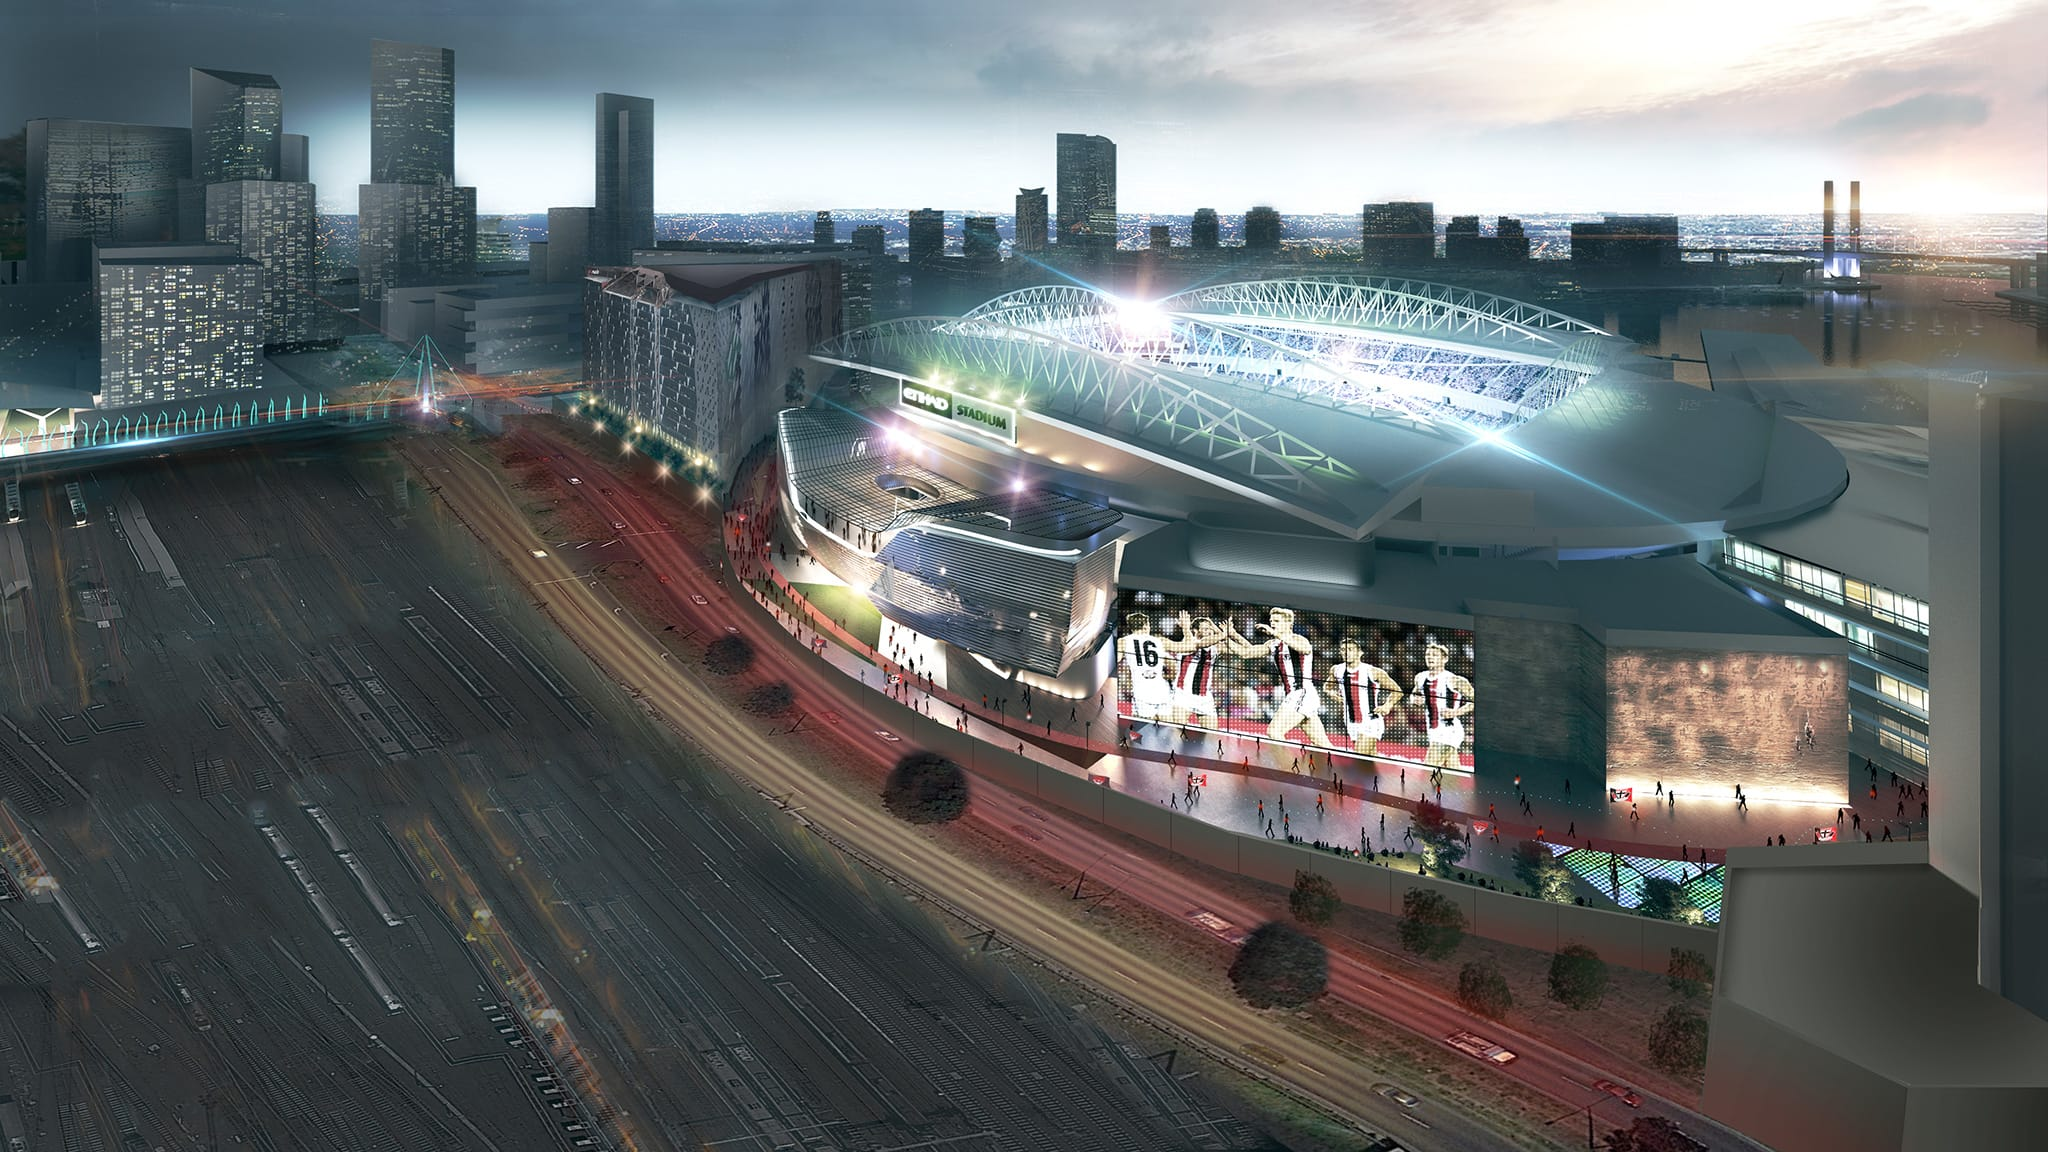 Artist impression of a revamped Etihad Stadium - AFL,MCG,Etihad Stadium,VU Whitten Oval,Ikon Park,Mars Stadium